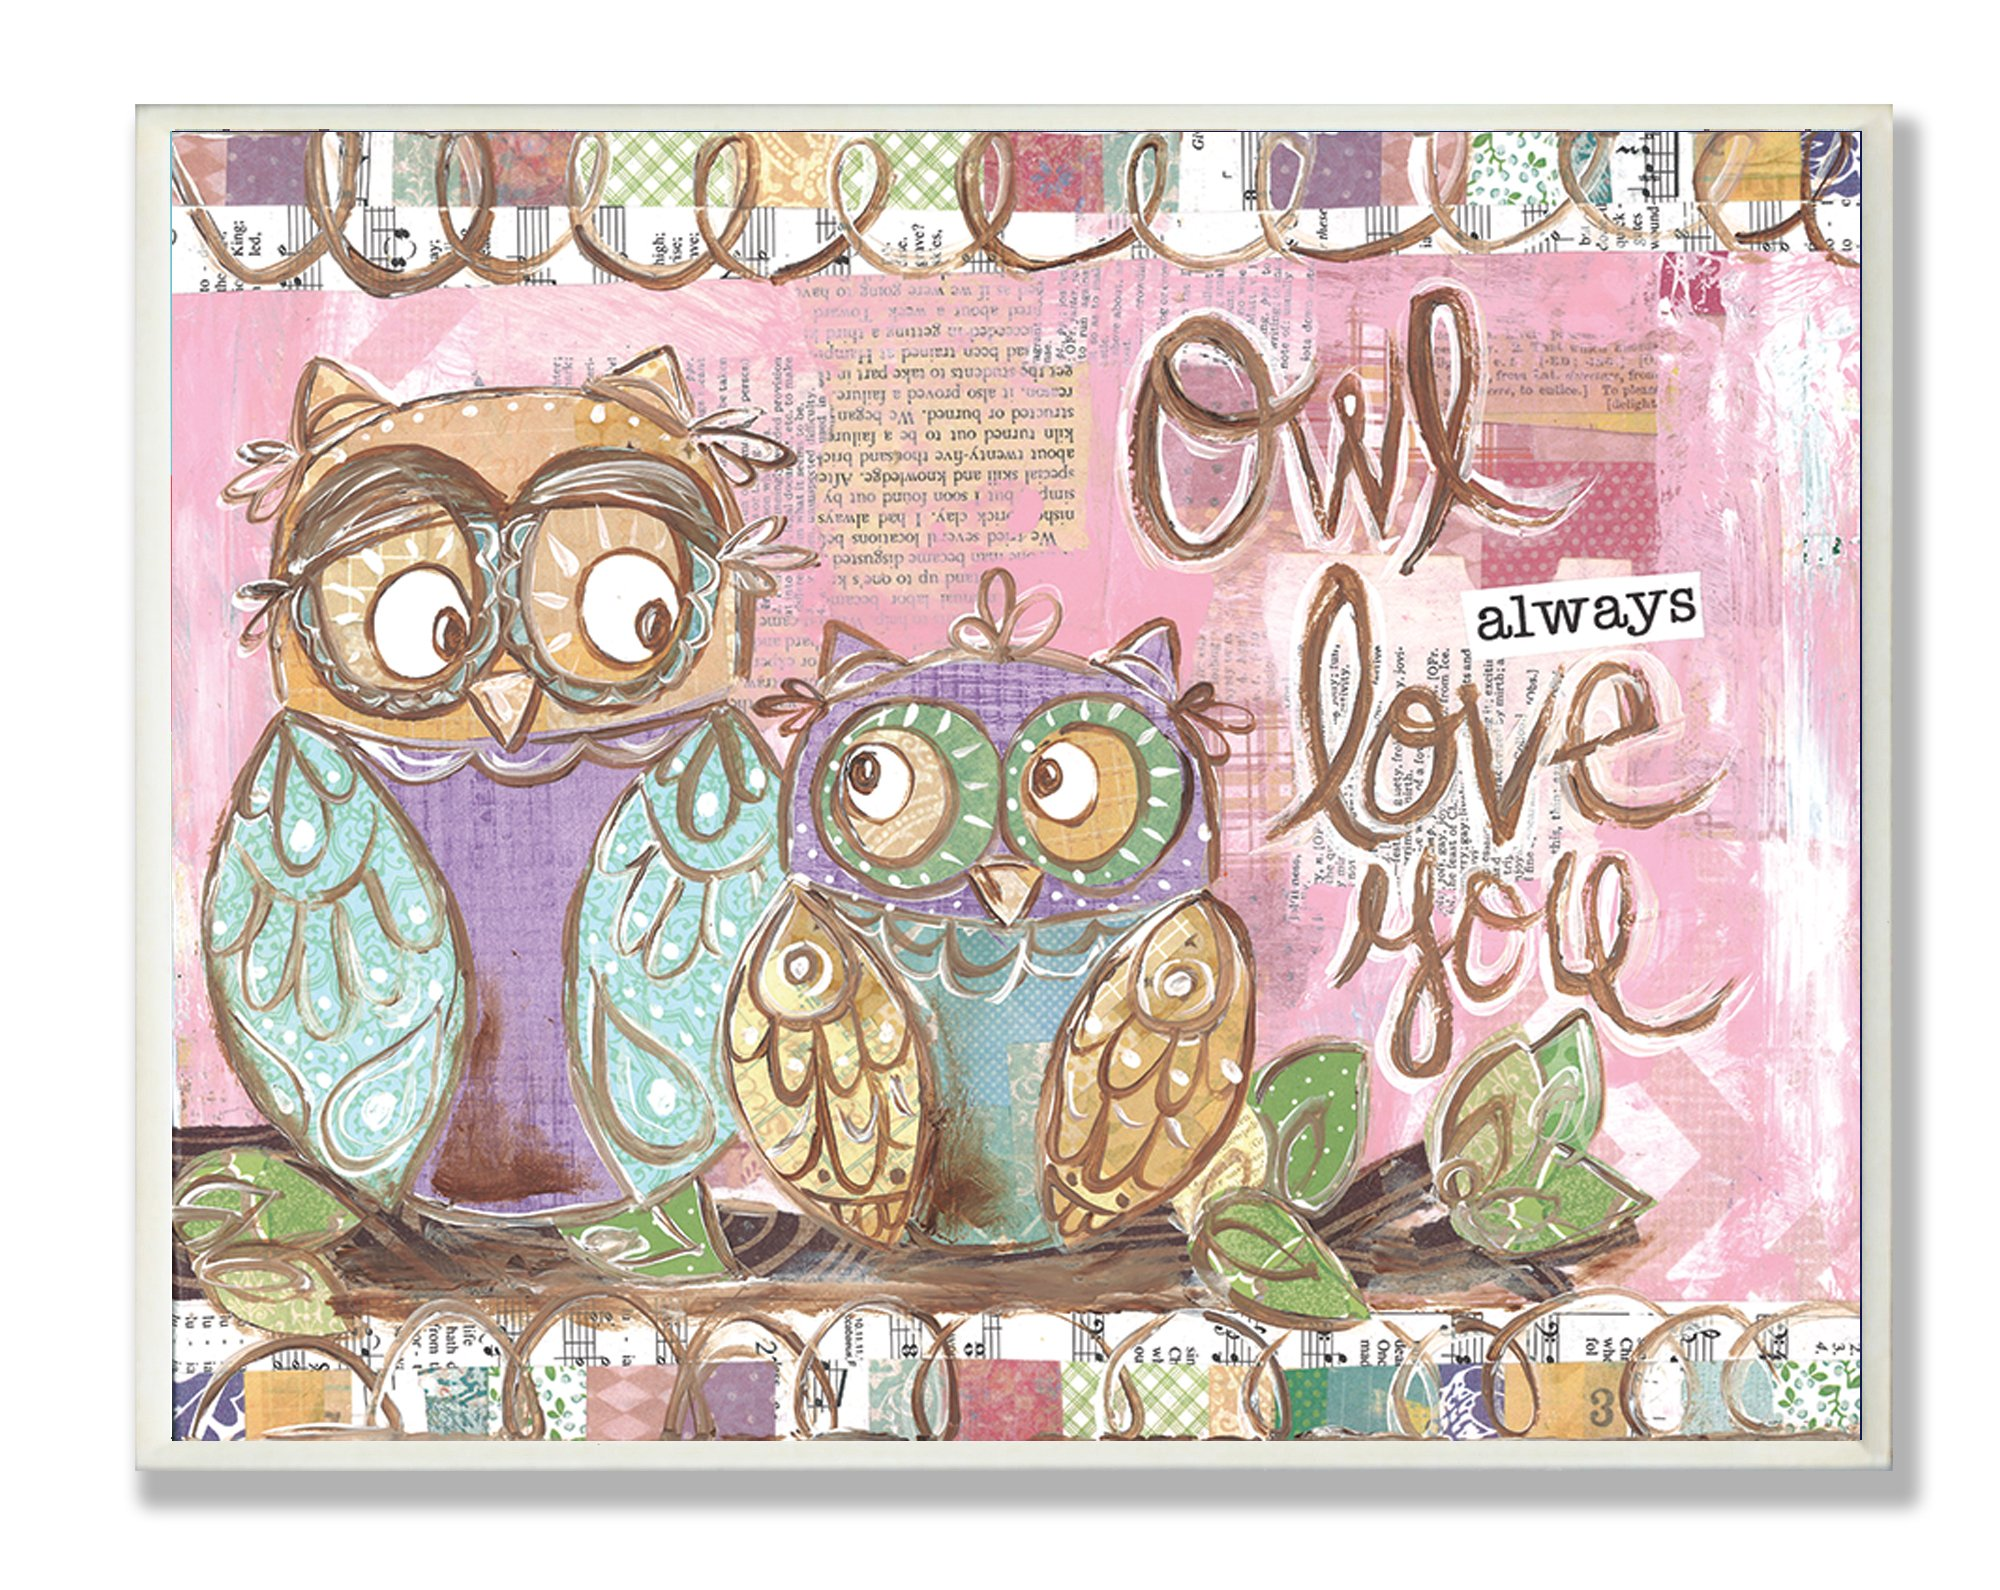 The Kids Room by Stupell Owl Always Love You Pastel Rectangle Wall Plaque by The Kids Room by Stupell